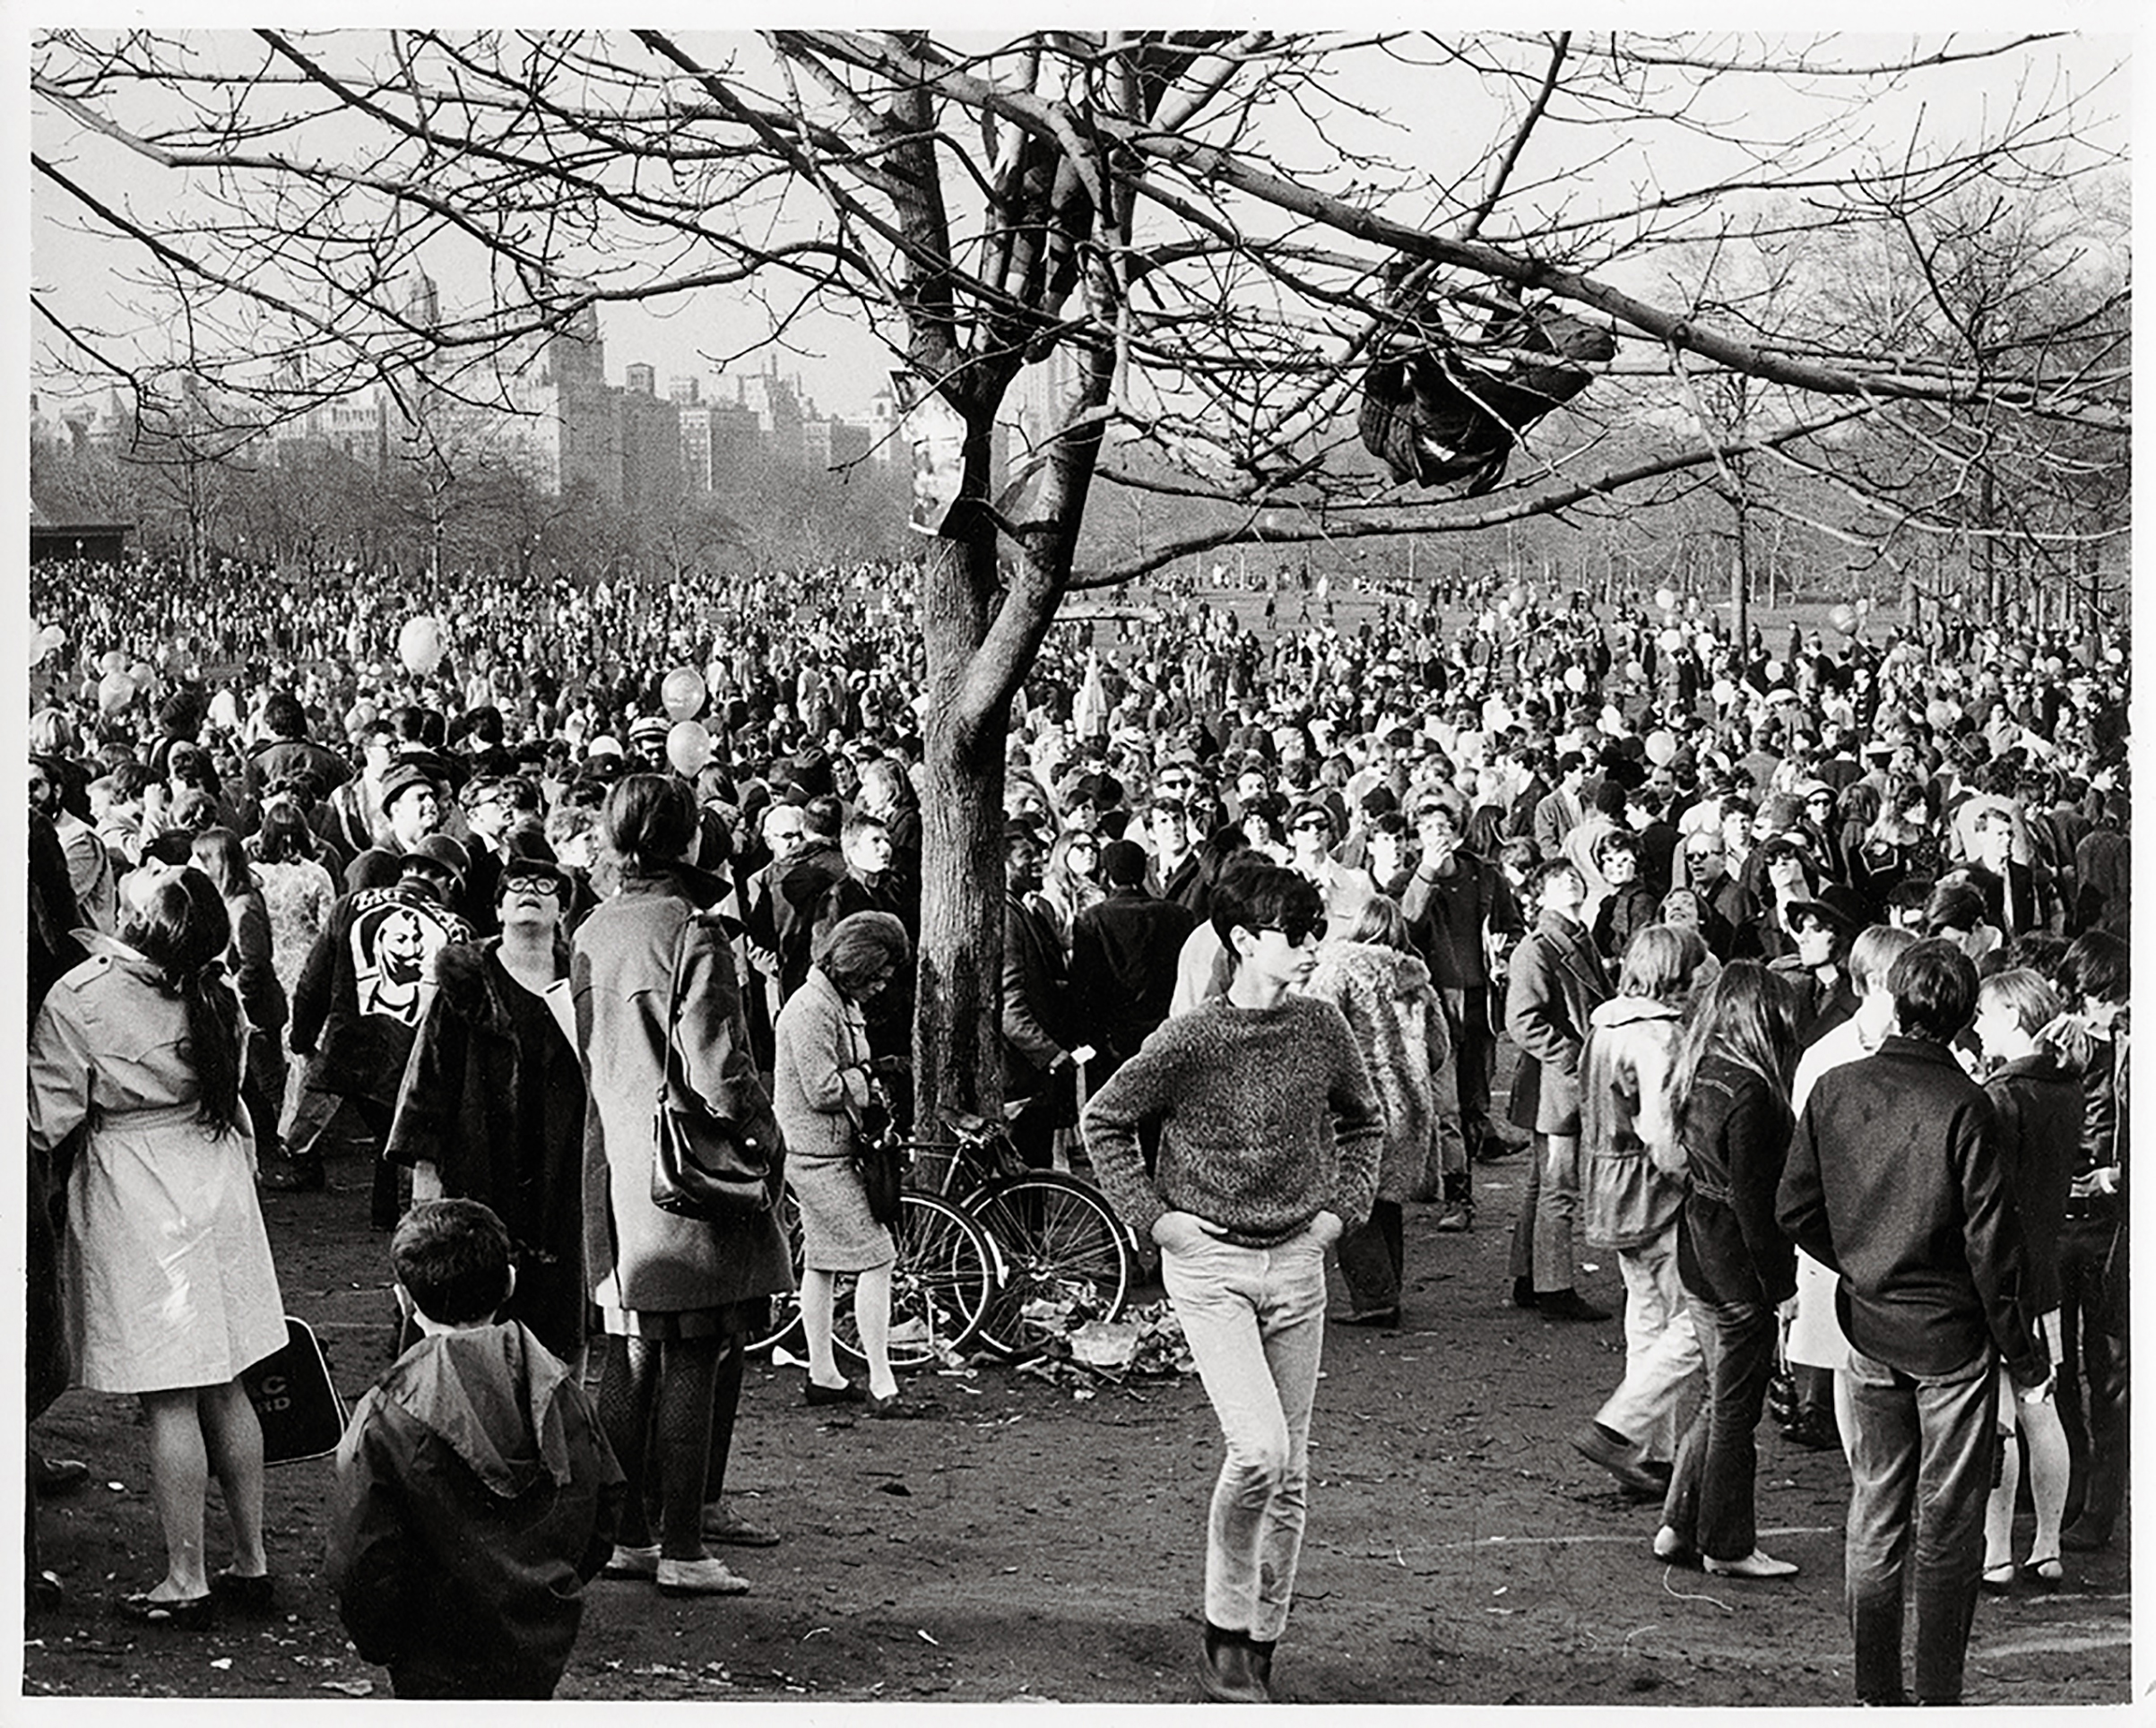 Central Park  Be-In.  March 26, 1967. Photograph by Frederick Kelly.